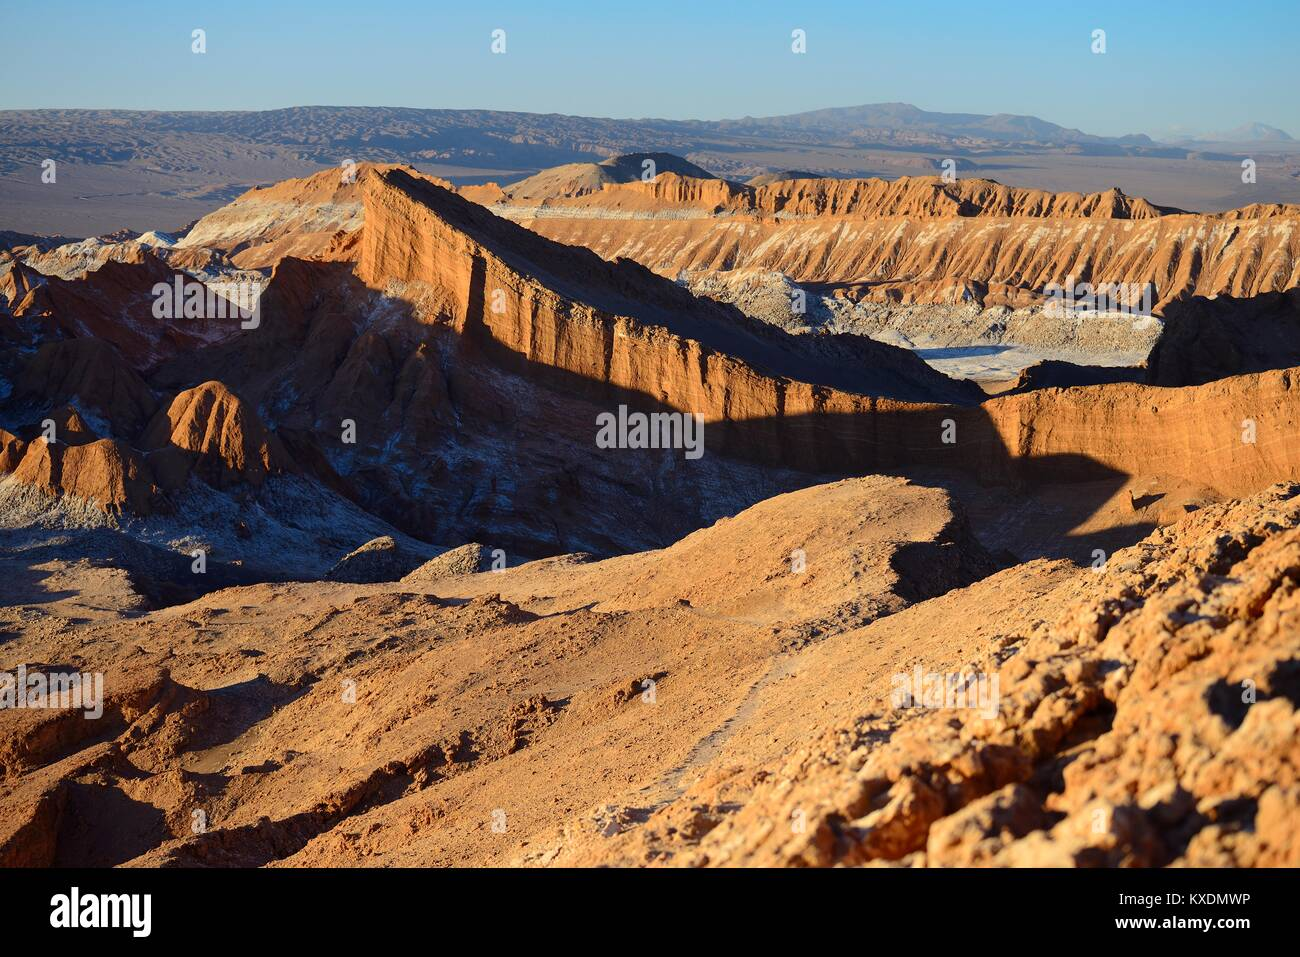 In the Valley of the Moon, Valle de la Luna, San Pedro de Atacama, Antofagasta, Chile - Stock Image